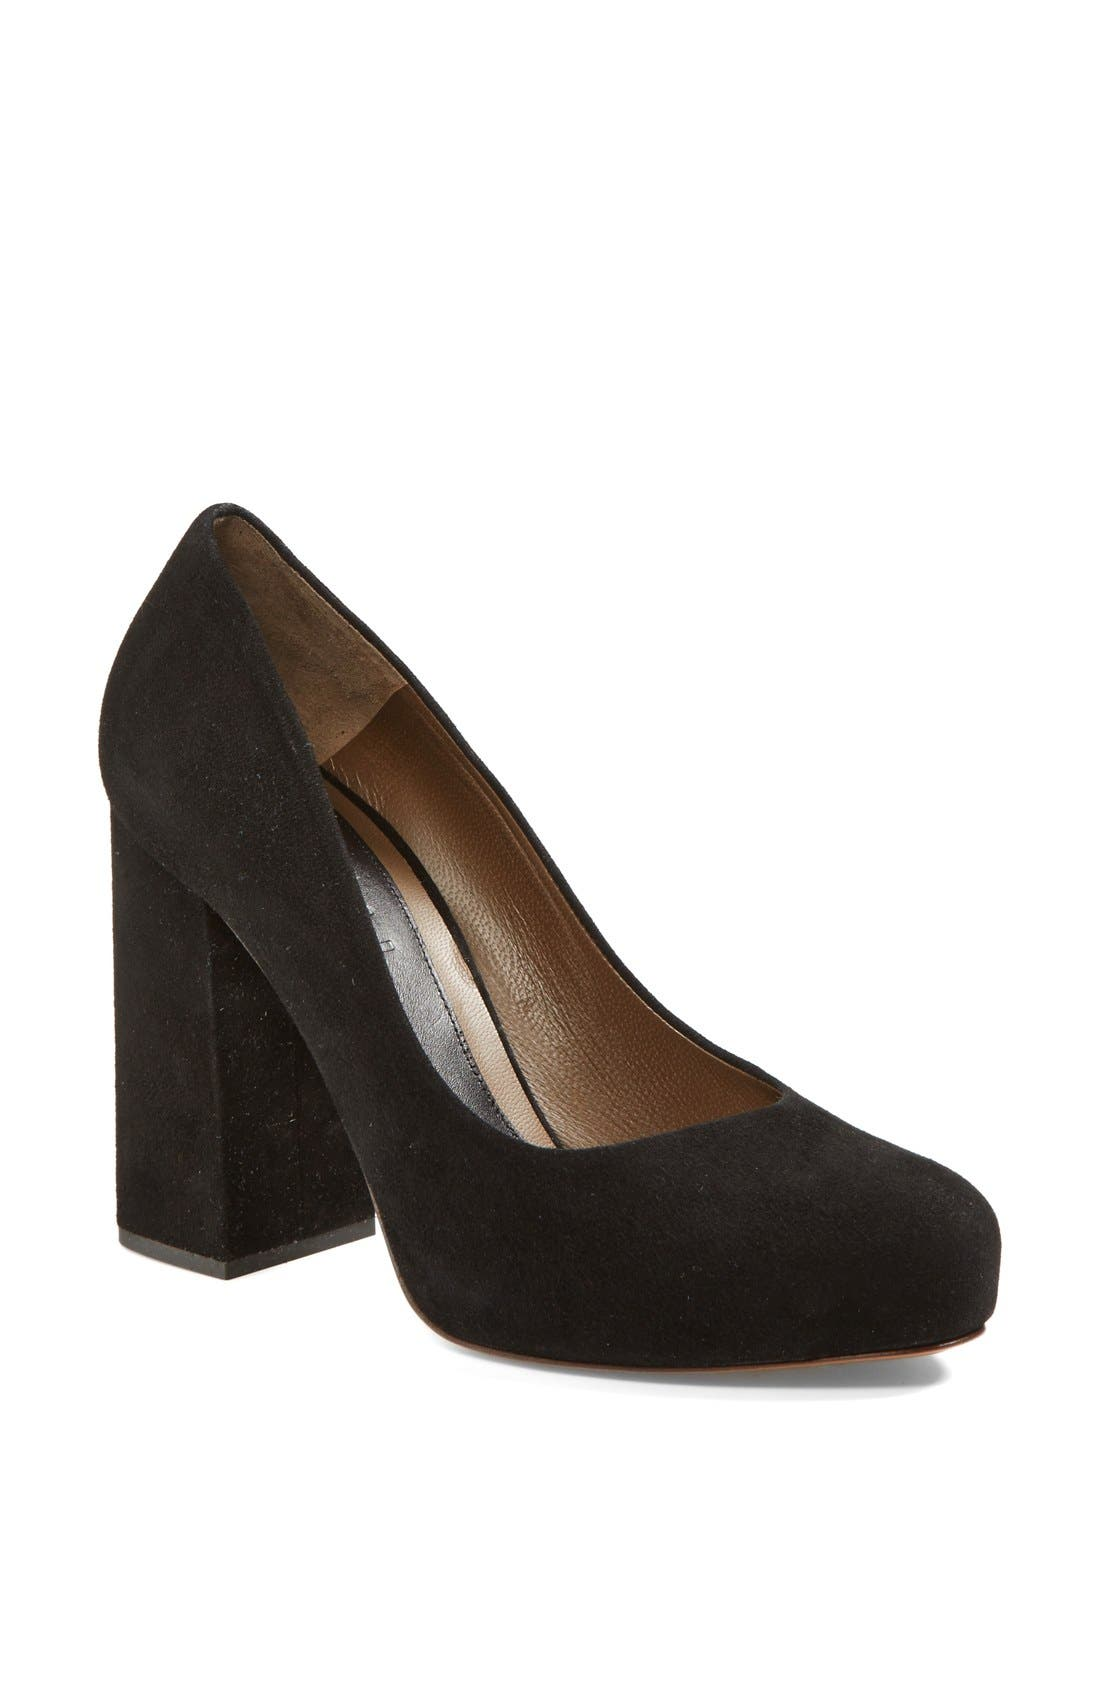 Alternate Image 1 Selected - Marni Platform Pump